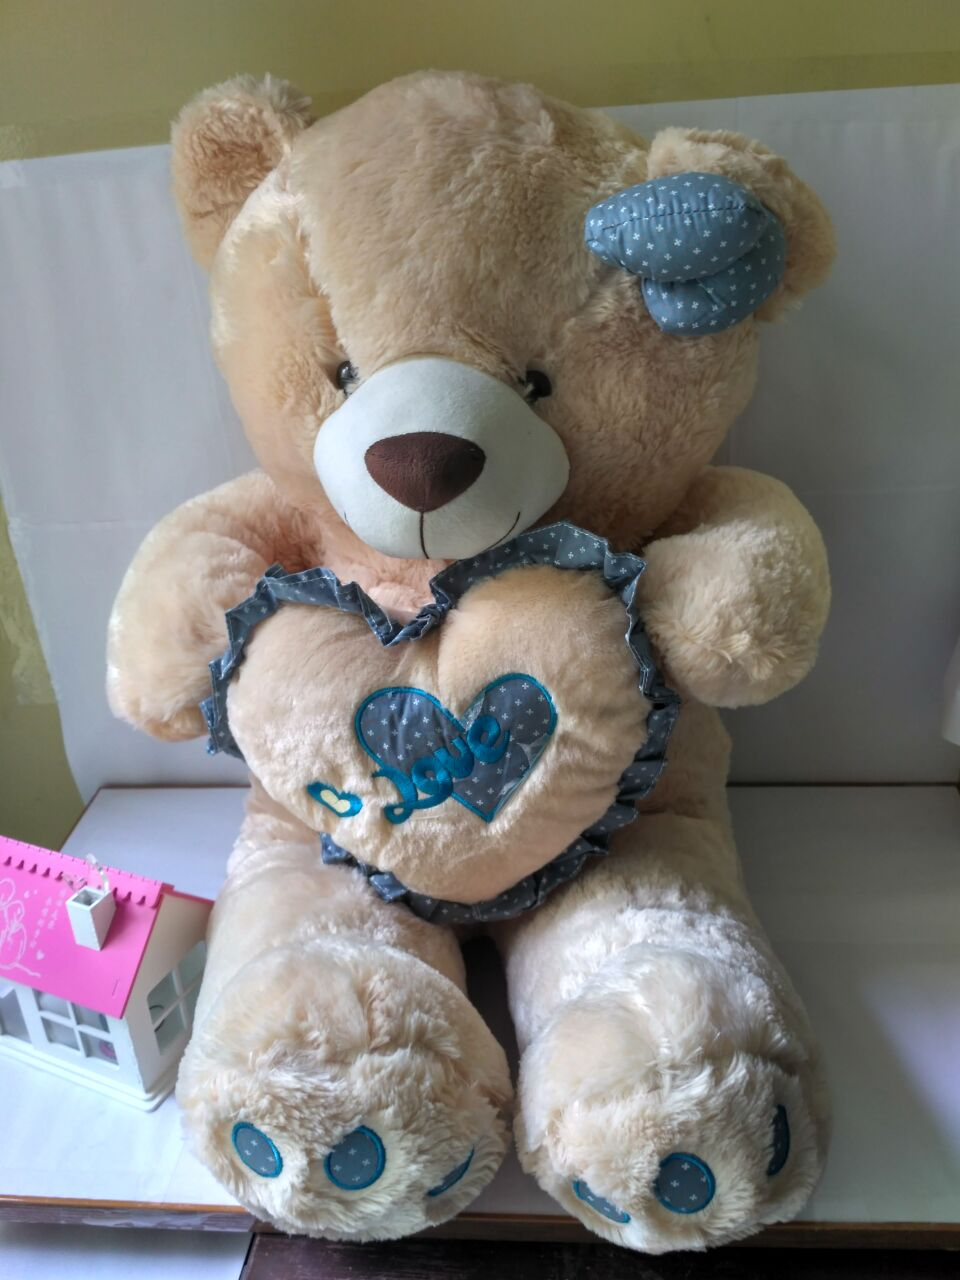 new plush teddy bear toy cute blue heart and bow bear doll gift about 100cm new cute plush brown teddy bear toy pink heart and bow bear doll gift about 70cm